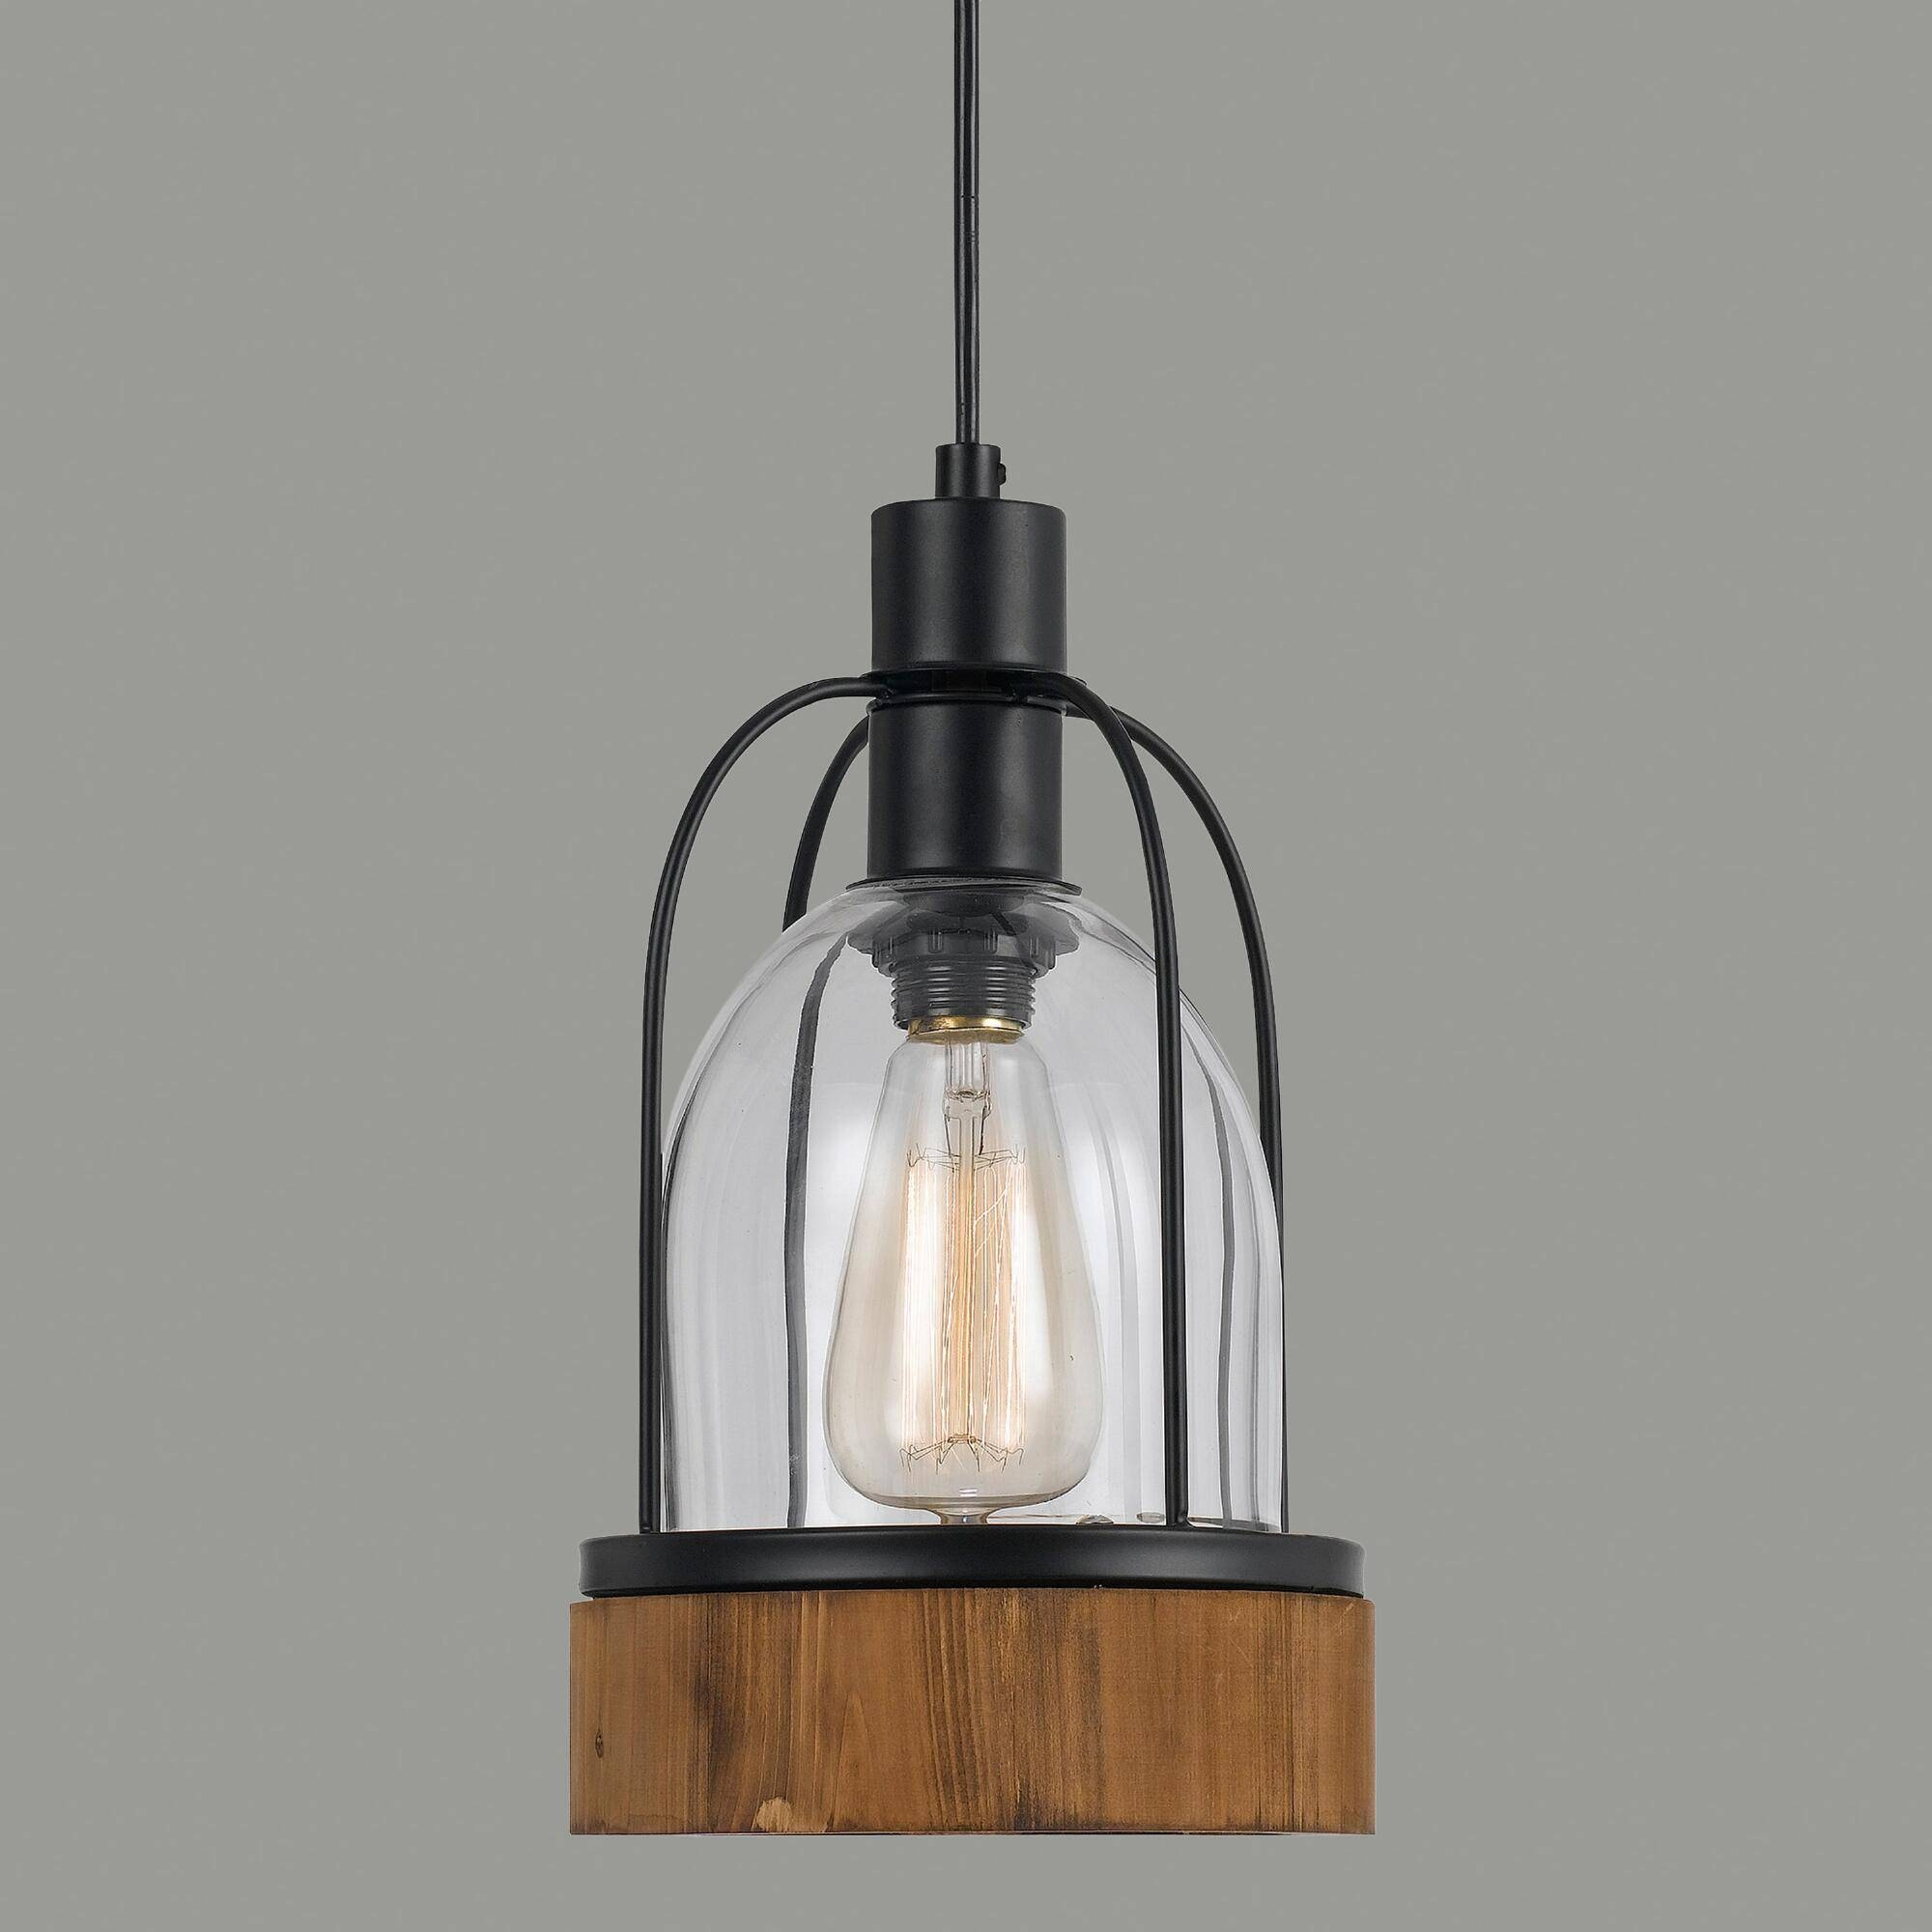 Lighting Design Ideas: Nice Fixtures Industrial Style Pendant within Industrial Style Pendant Lights Fixtures (Image 10 of 15)